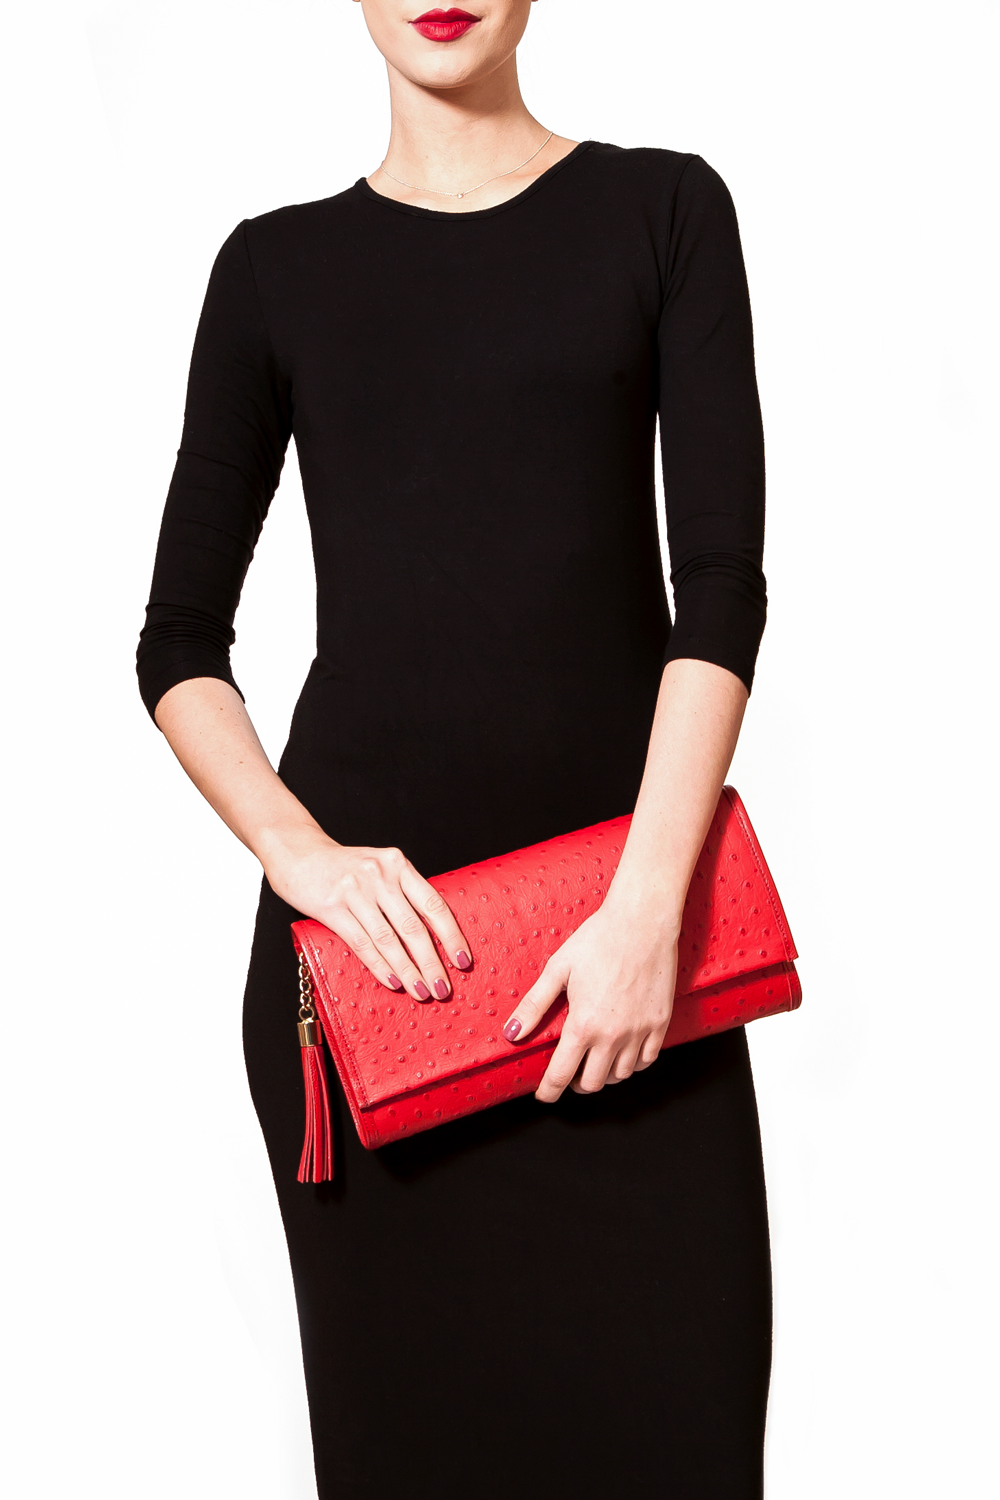 'Cara' Envelope Clutch in Red Ostrich Print Leather | Mel Boteri | Clutch On Model